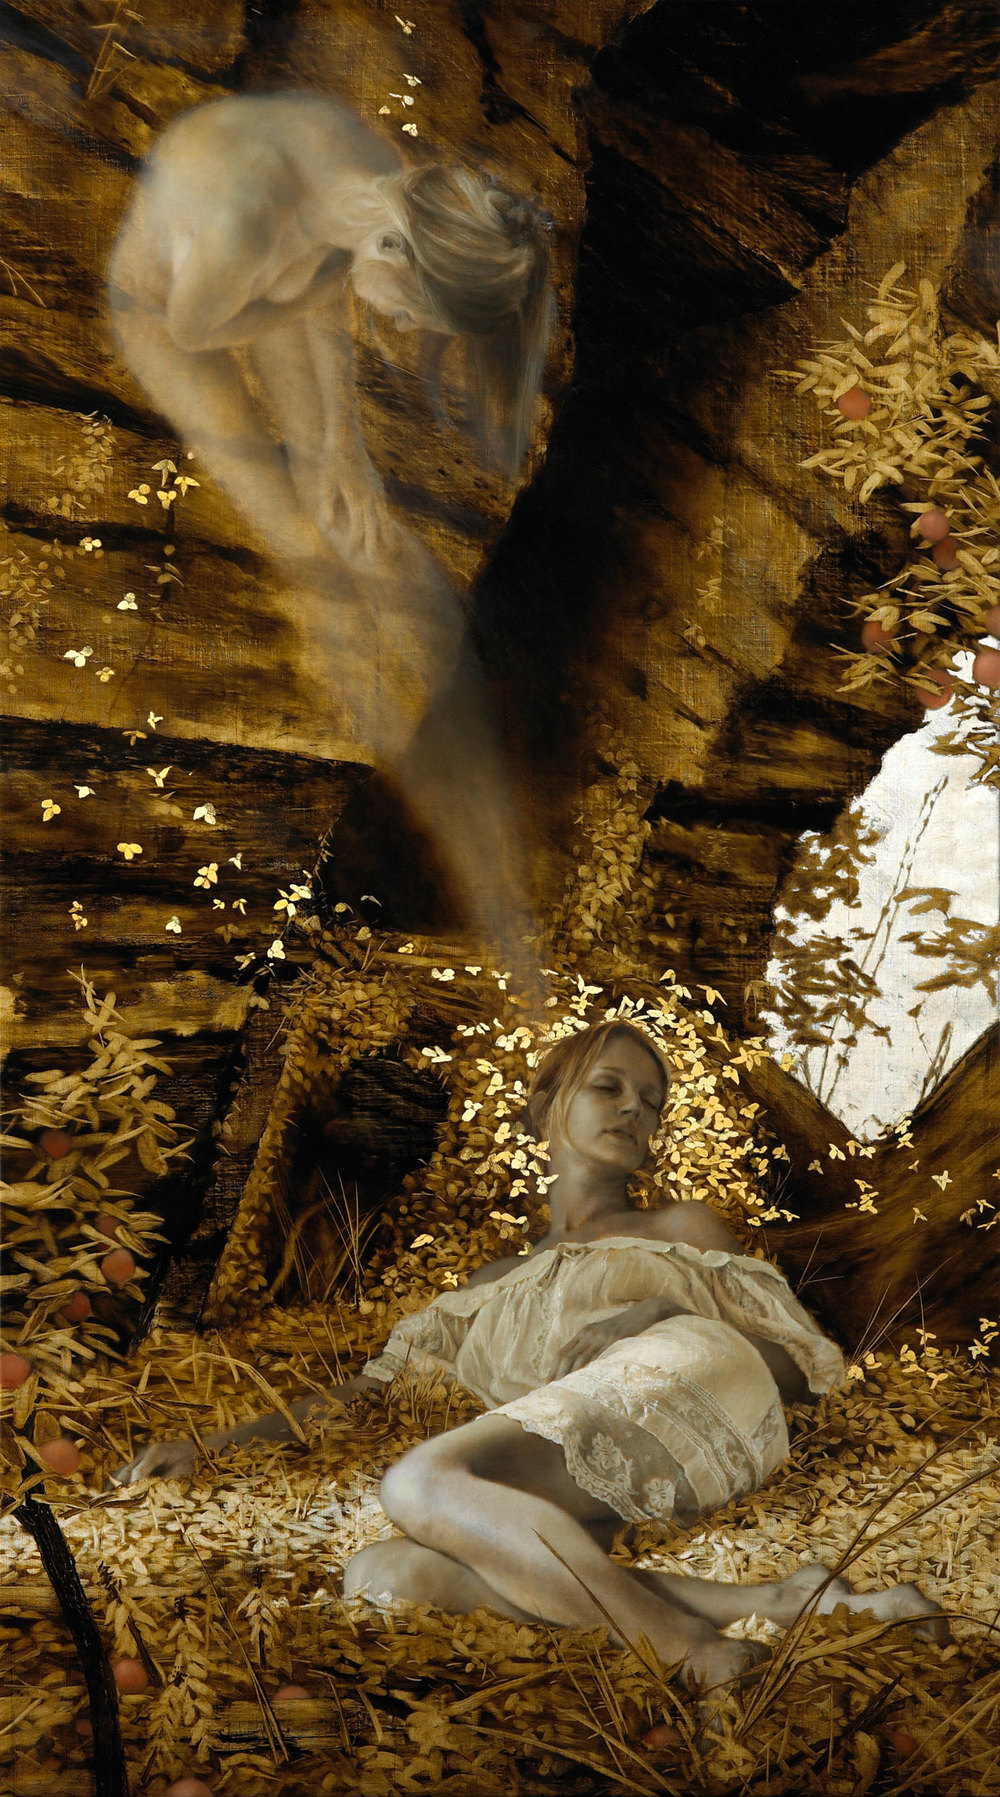 Eidolon , 2008-09. Oil, gold, and silver on linen. 64 x 36 inches. Private collection.